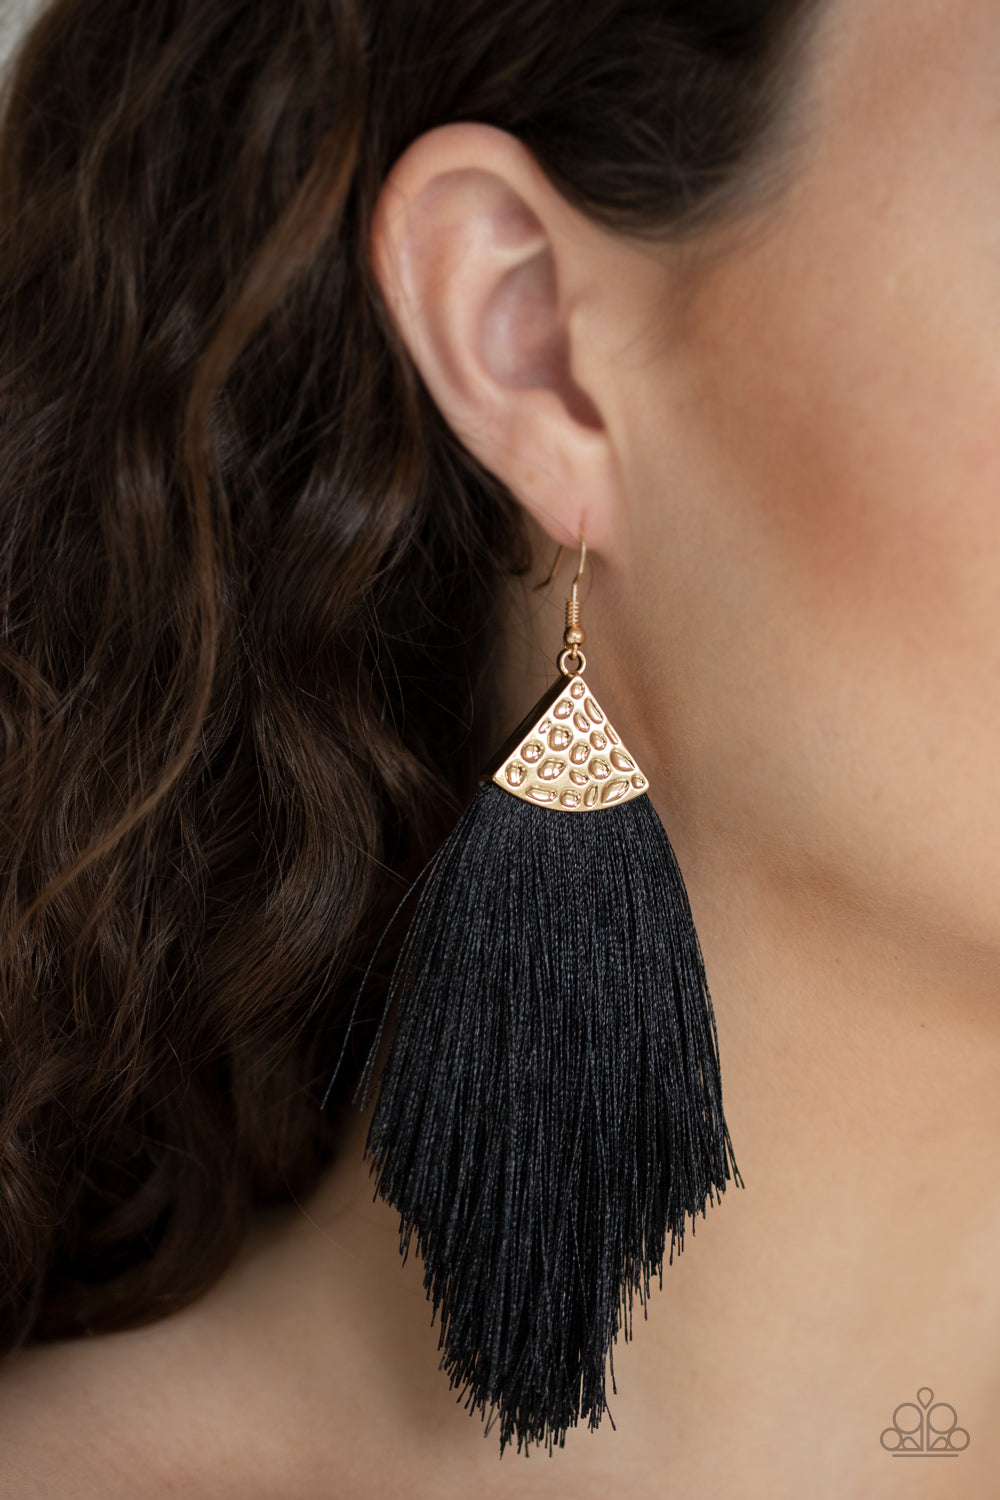 Paparazzi Jewelry & Accessories - Tassel Tempo - Gold Earrings. Bling By Titia Boutique